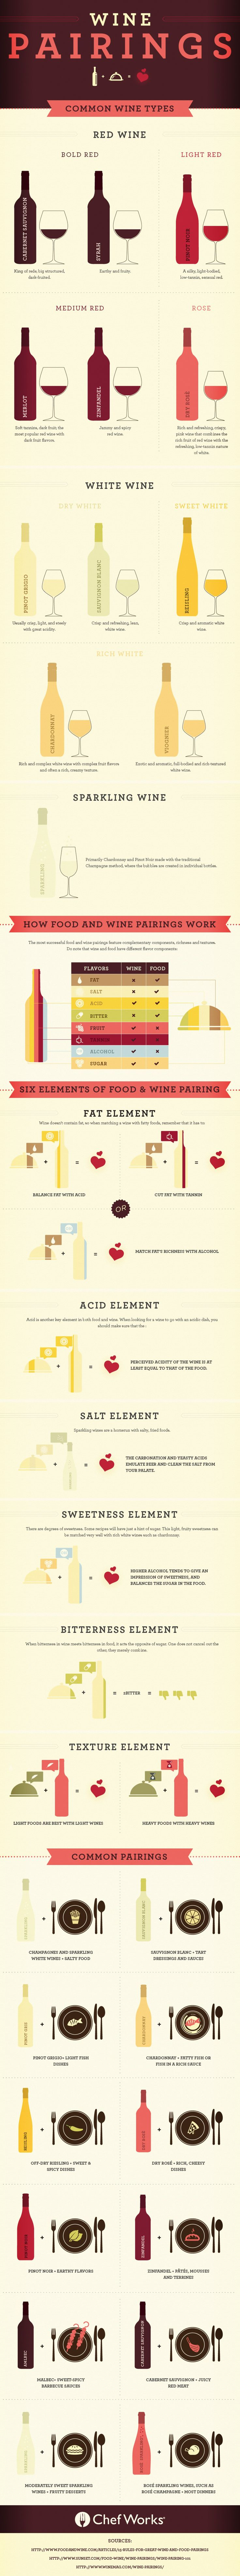 An extensive look at the act of pairing wine with food in a harmonious way, with detailed tips on how to choose the right pairing every time >> https://www.finedininglovers.com/blog/food-drinks/wine-pairing-infographic-science/